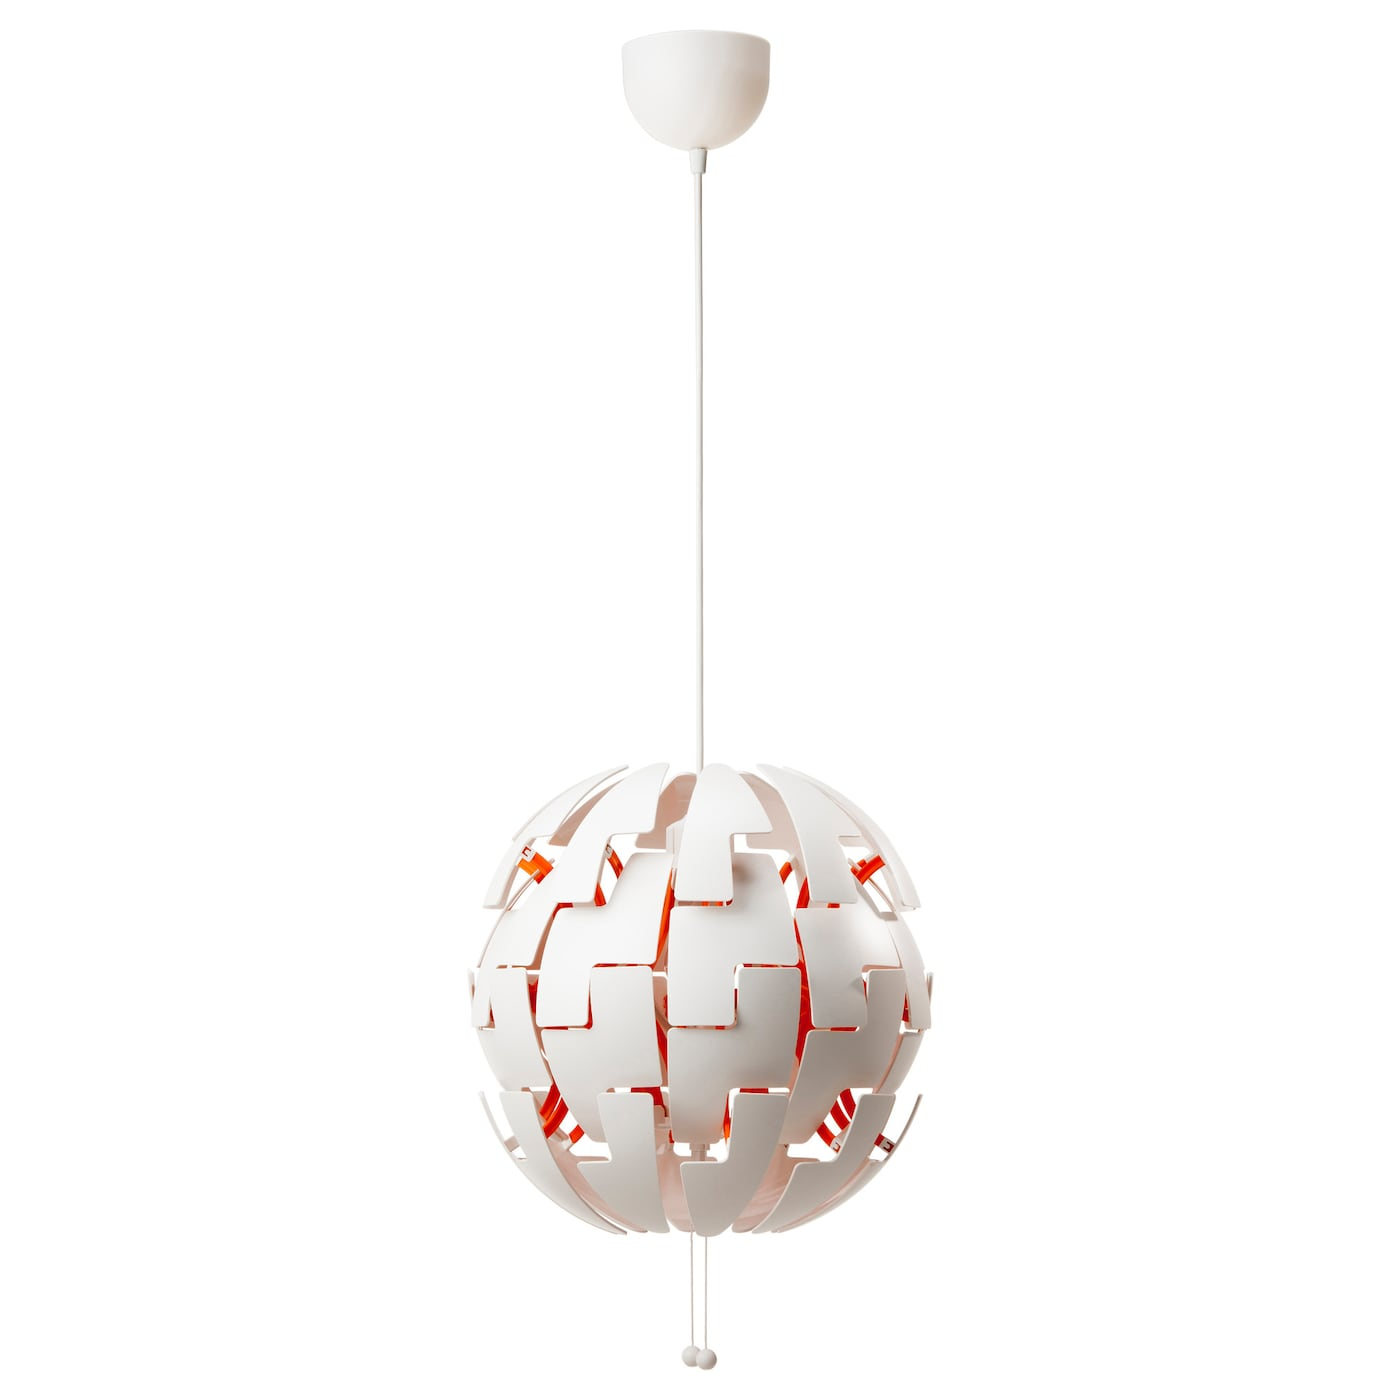 ikea lighting usa. ikea ps 2014 pendant lamp gives decorative patterns on the ceiling and wall ikea lighting usa